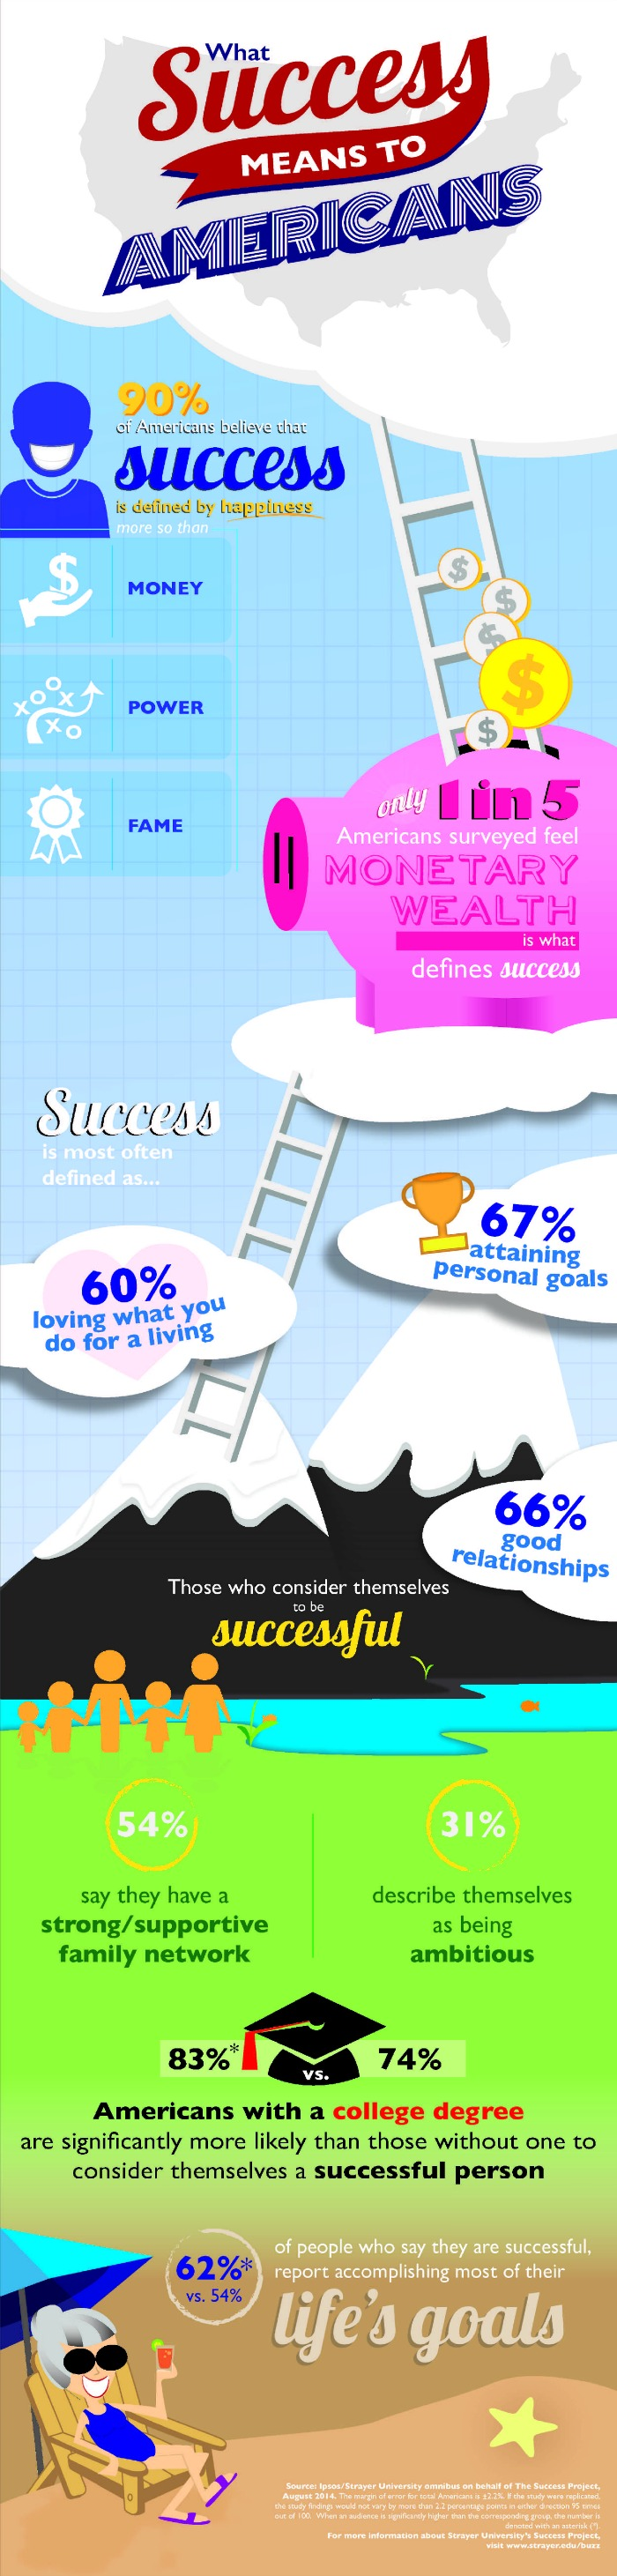 What Success Means to Americans infographic